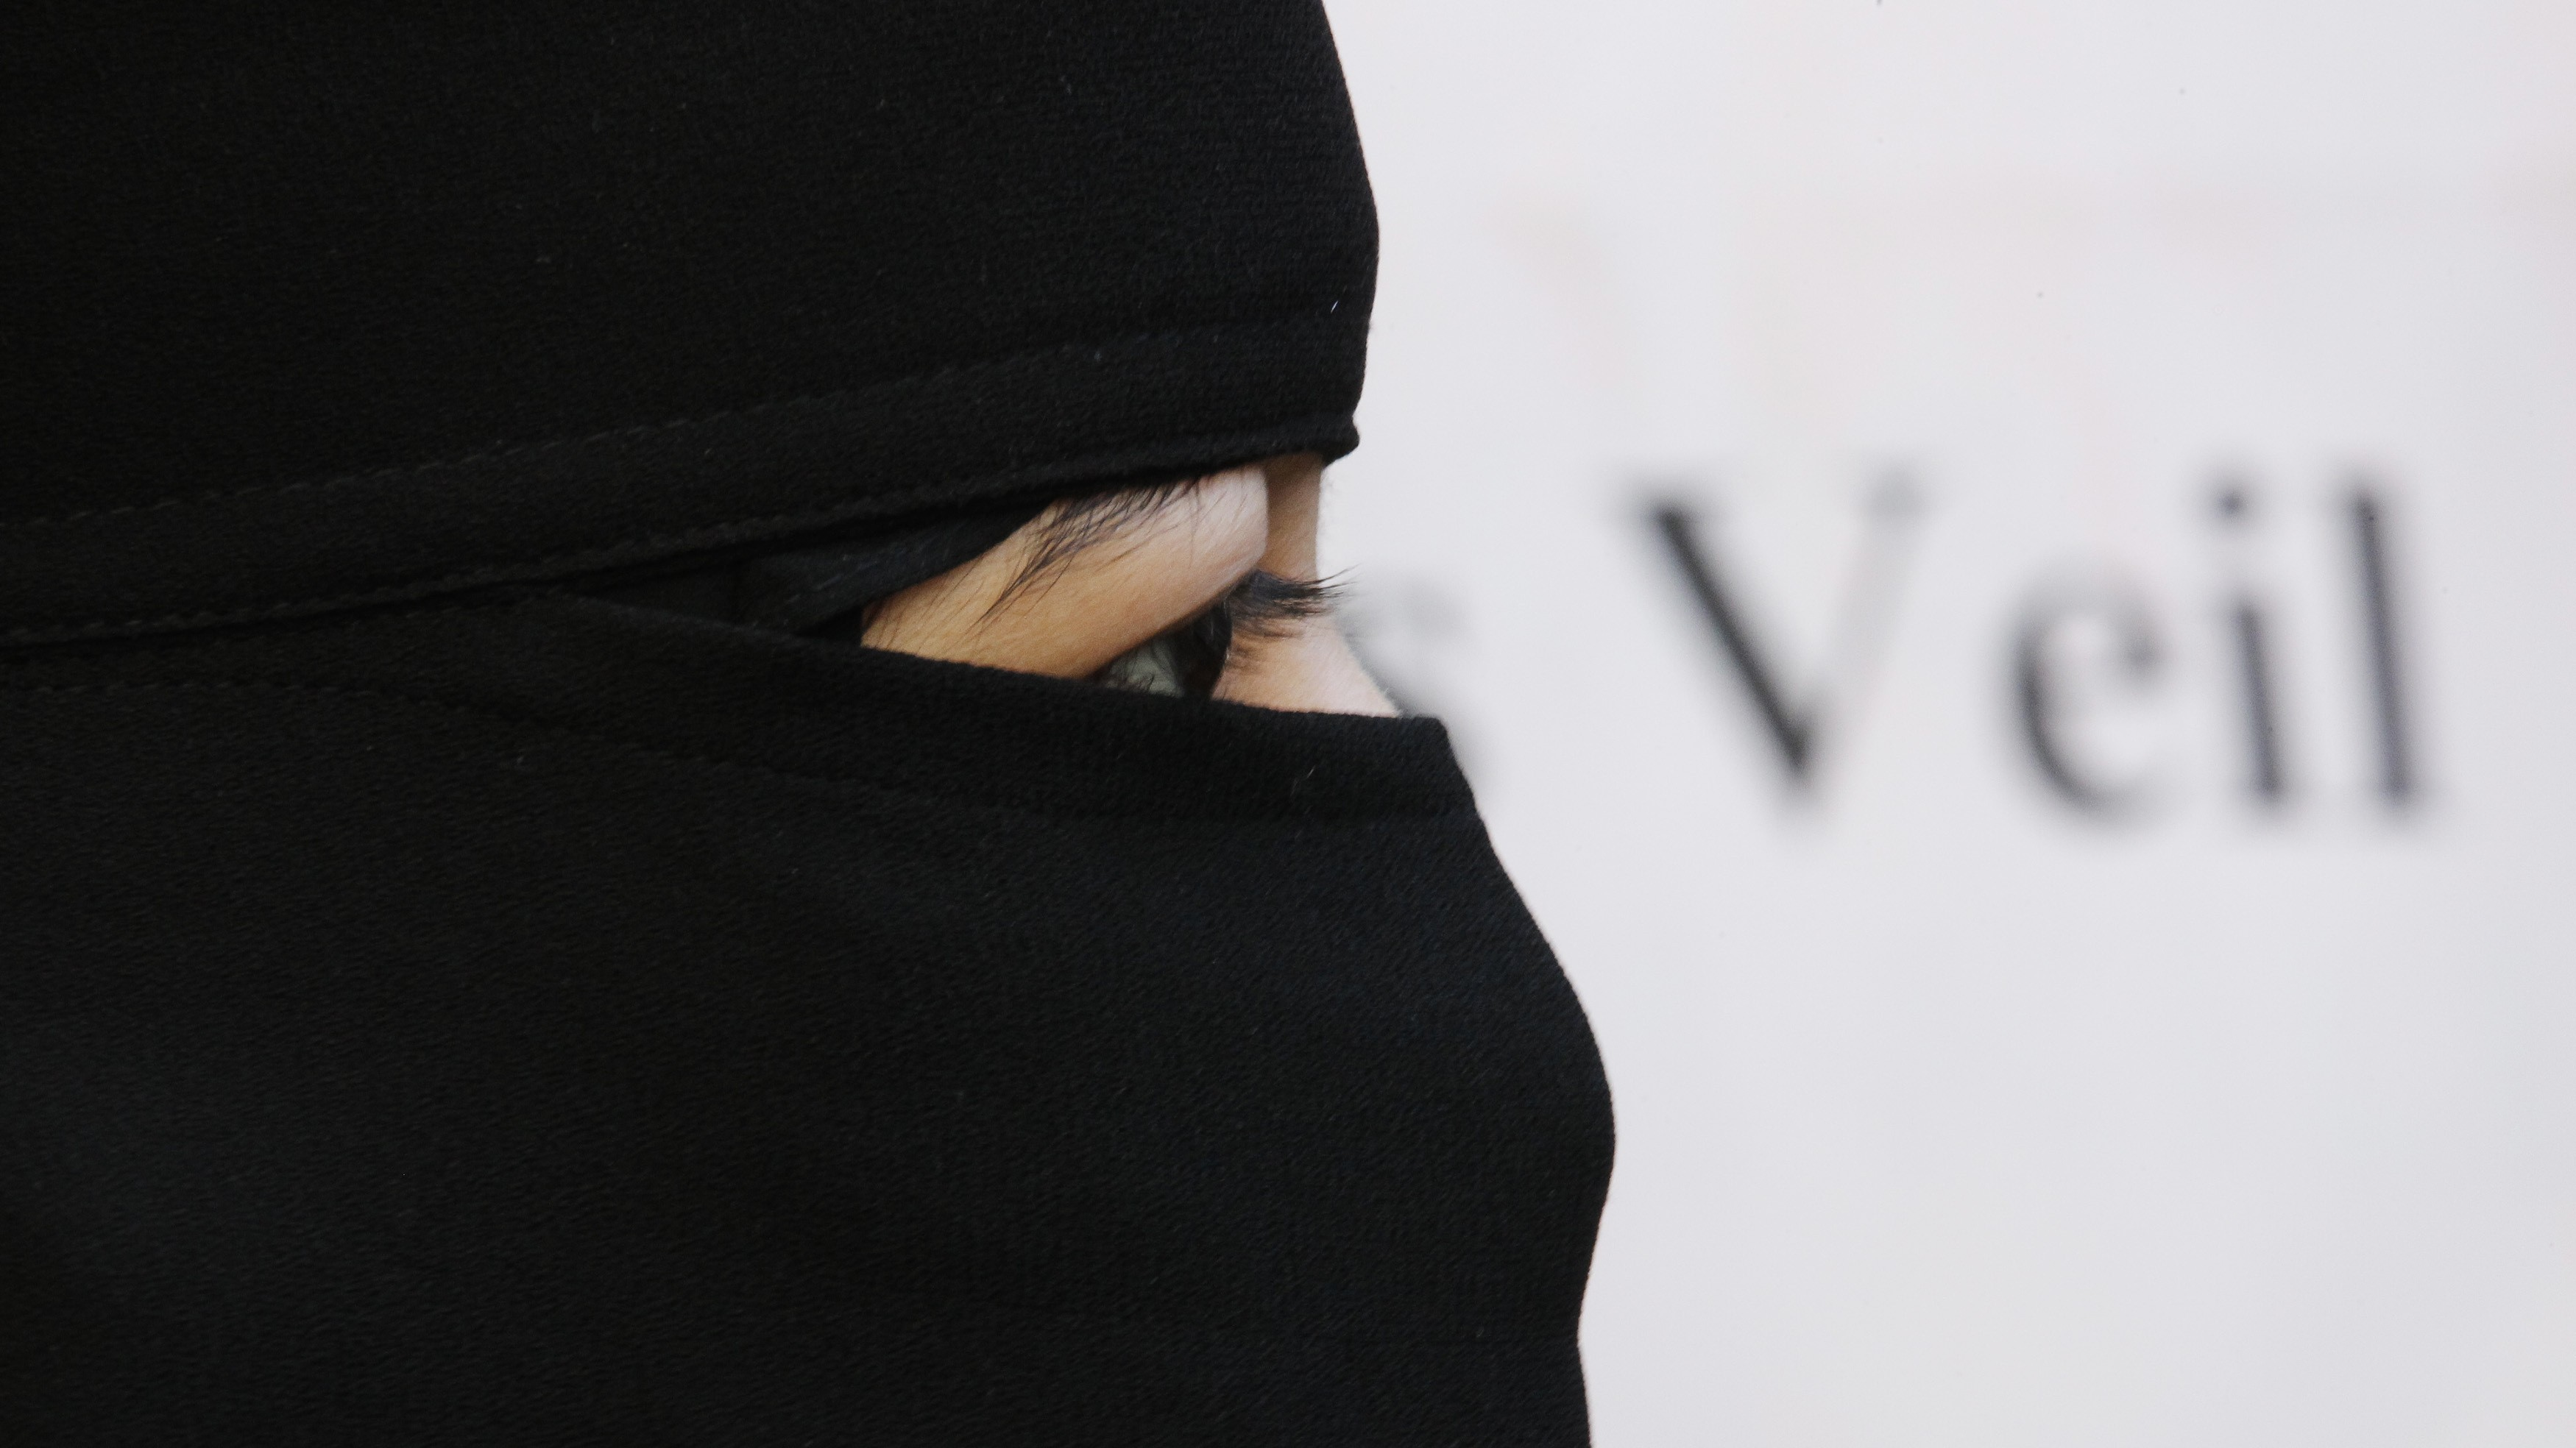 Burkas may be banned from public places in Germany